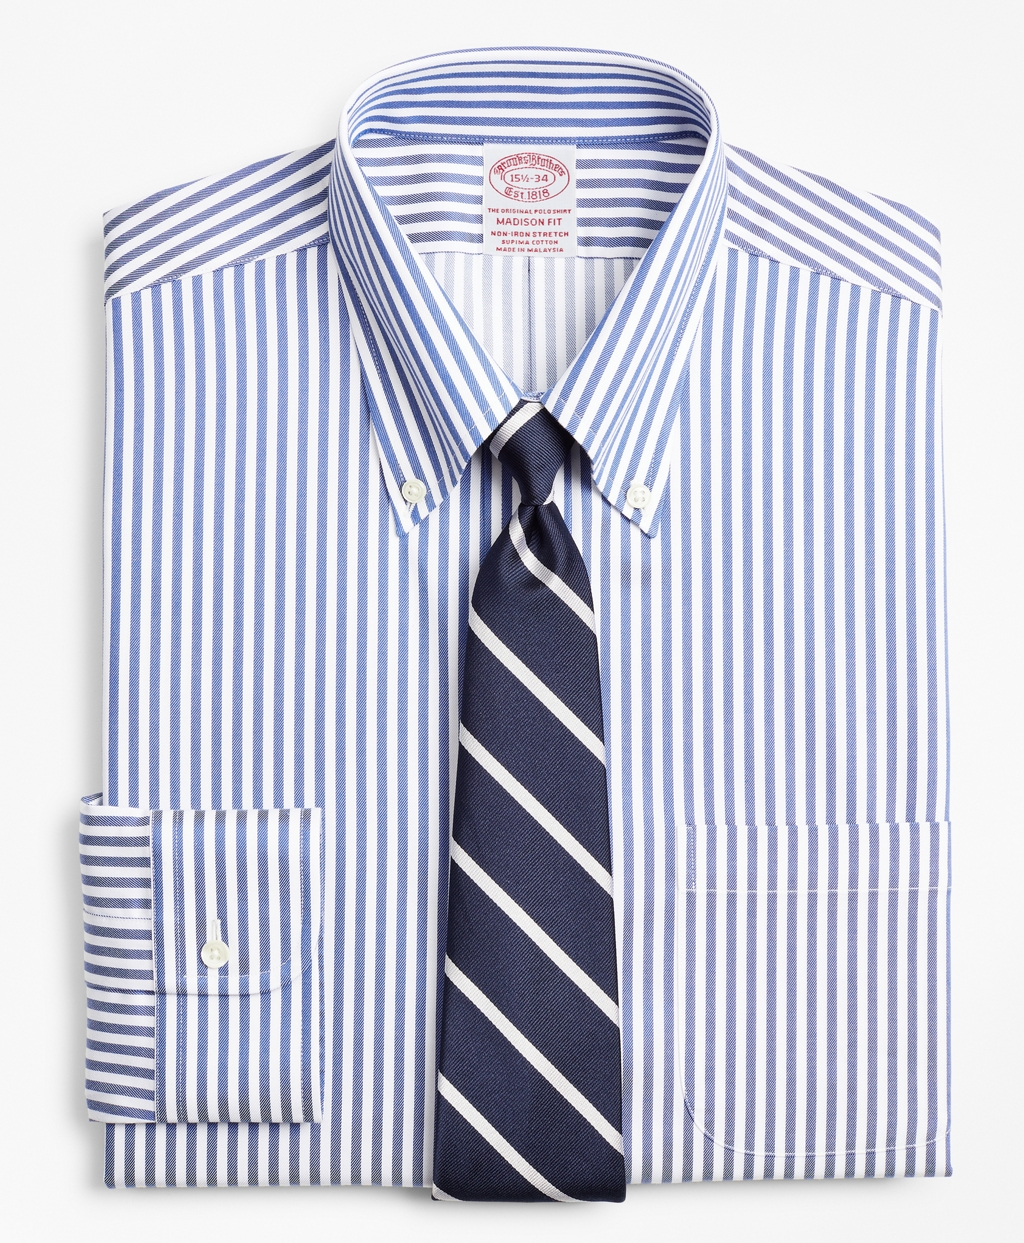 1930s Men's Fashion Guide- What Did Men Wear? Brooks Brothers Mens Stretch Regular Classic-Fit Dress Shirt Non-Iron Twill Button-Down Collar Bold Stripe $79.80 AT vintagedancer.com